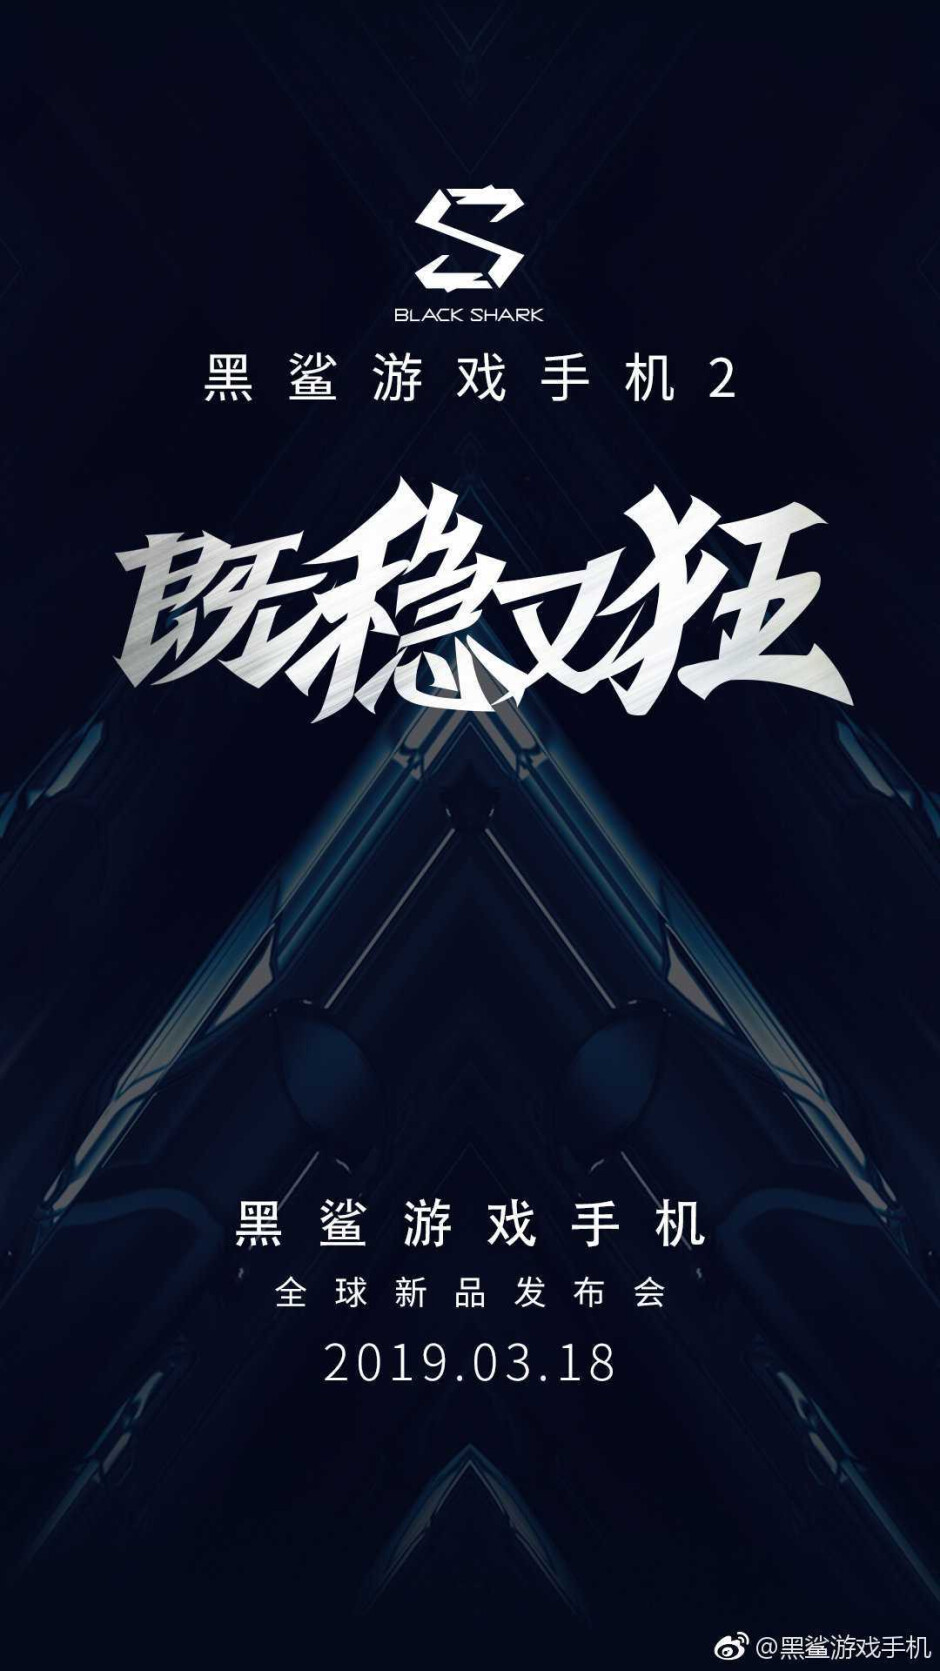 The Xiaomi Black Shark 2 gaming phone will be announced March 18